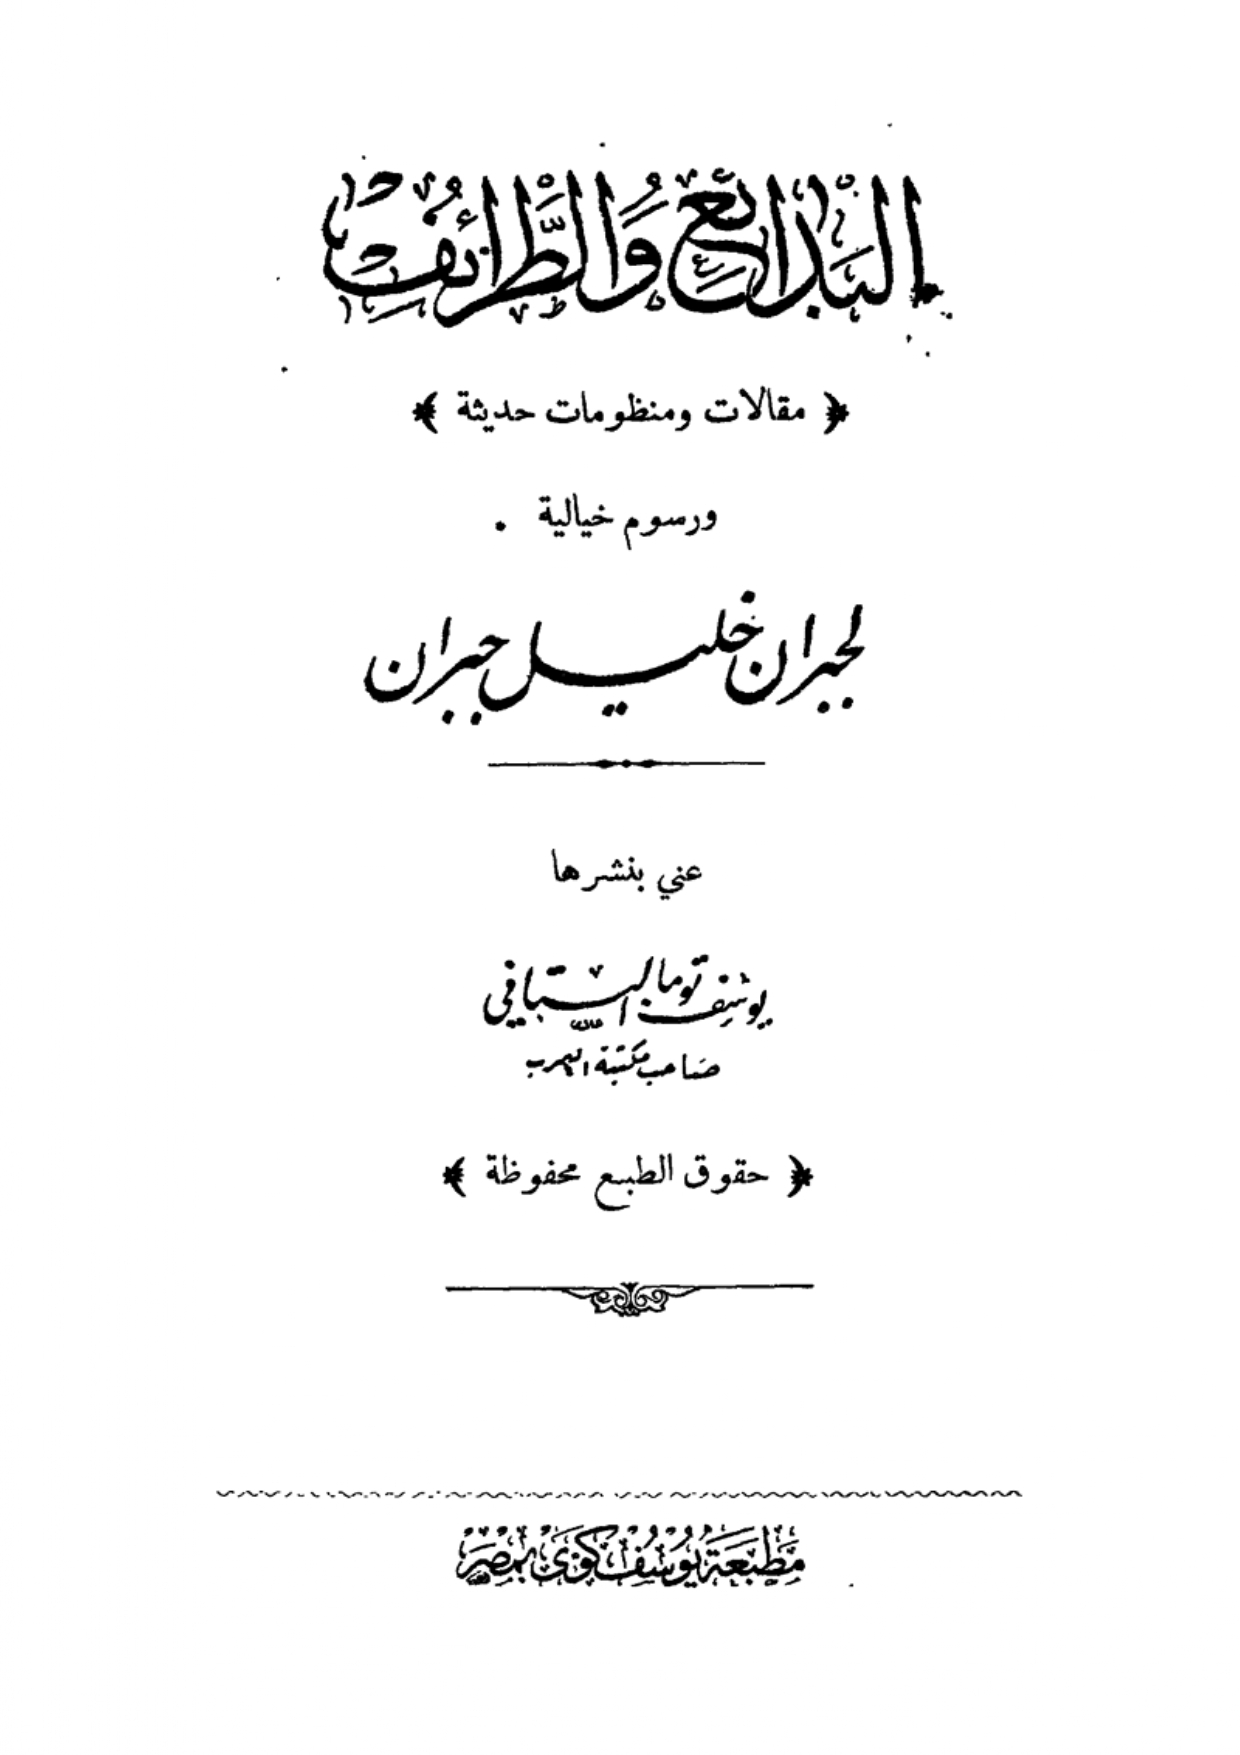 Al-Bada'i' wa al-Tara'if [Best Things and Masterpieces], al-Qahira: Yusuf Bustani, 1923.